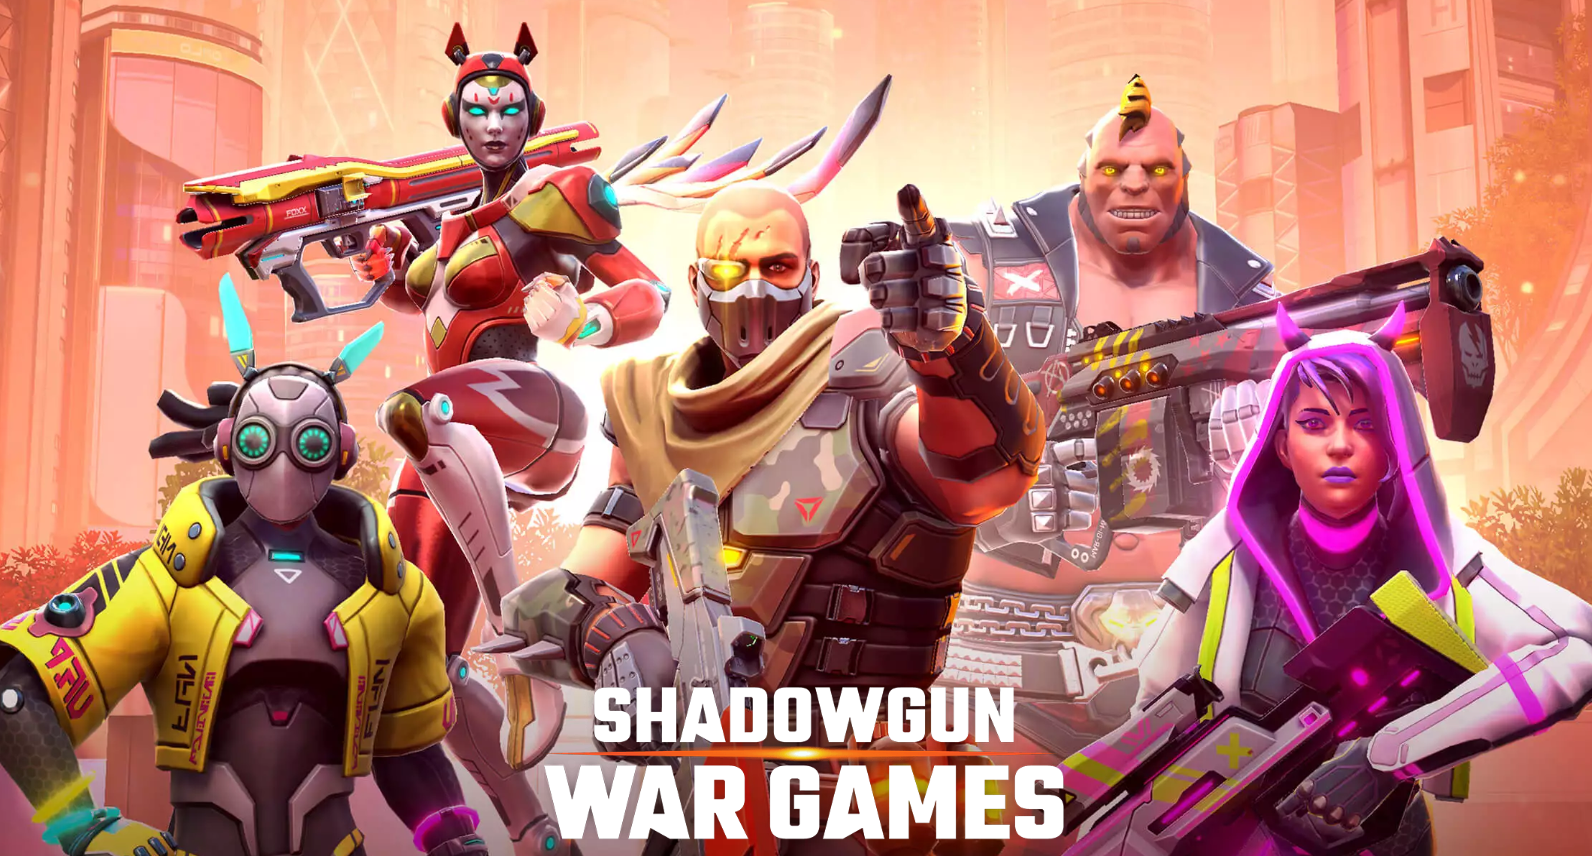 Shadowgun War Games: First Impressions - The Mobile Overwatch? 12